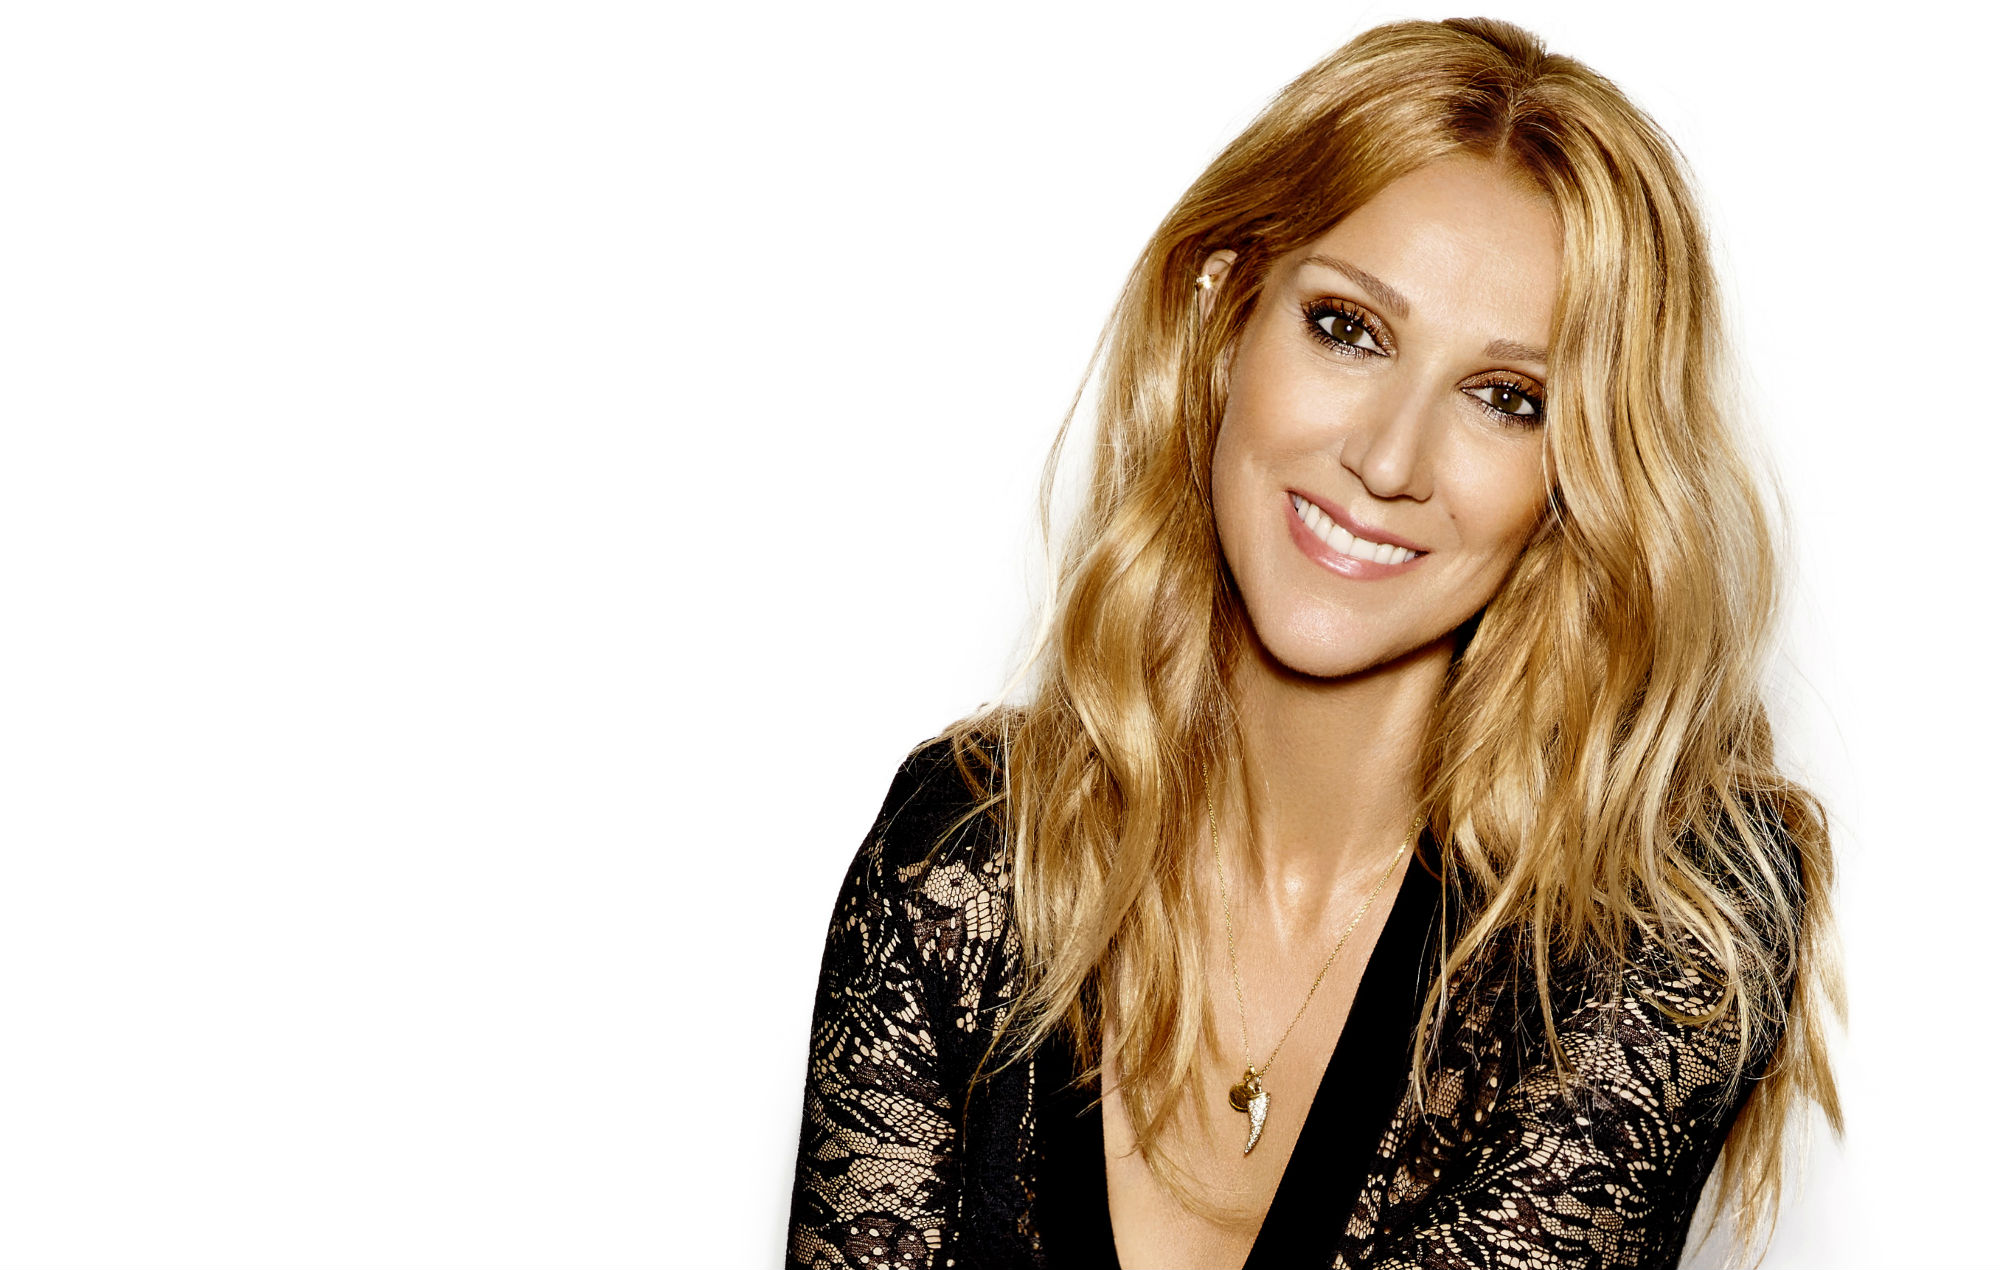 Fappening Celine Dion naked photo 2017